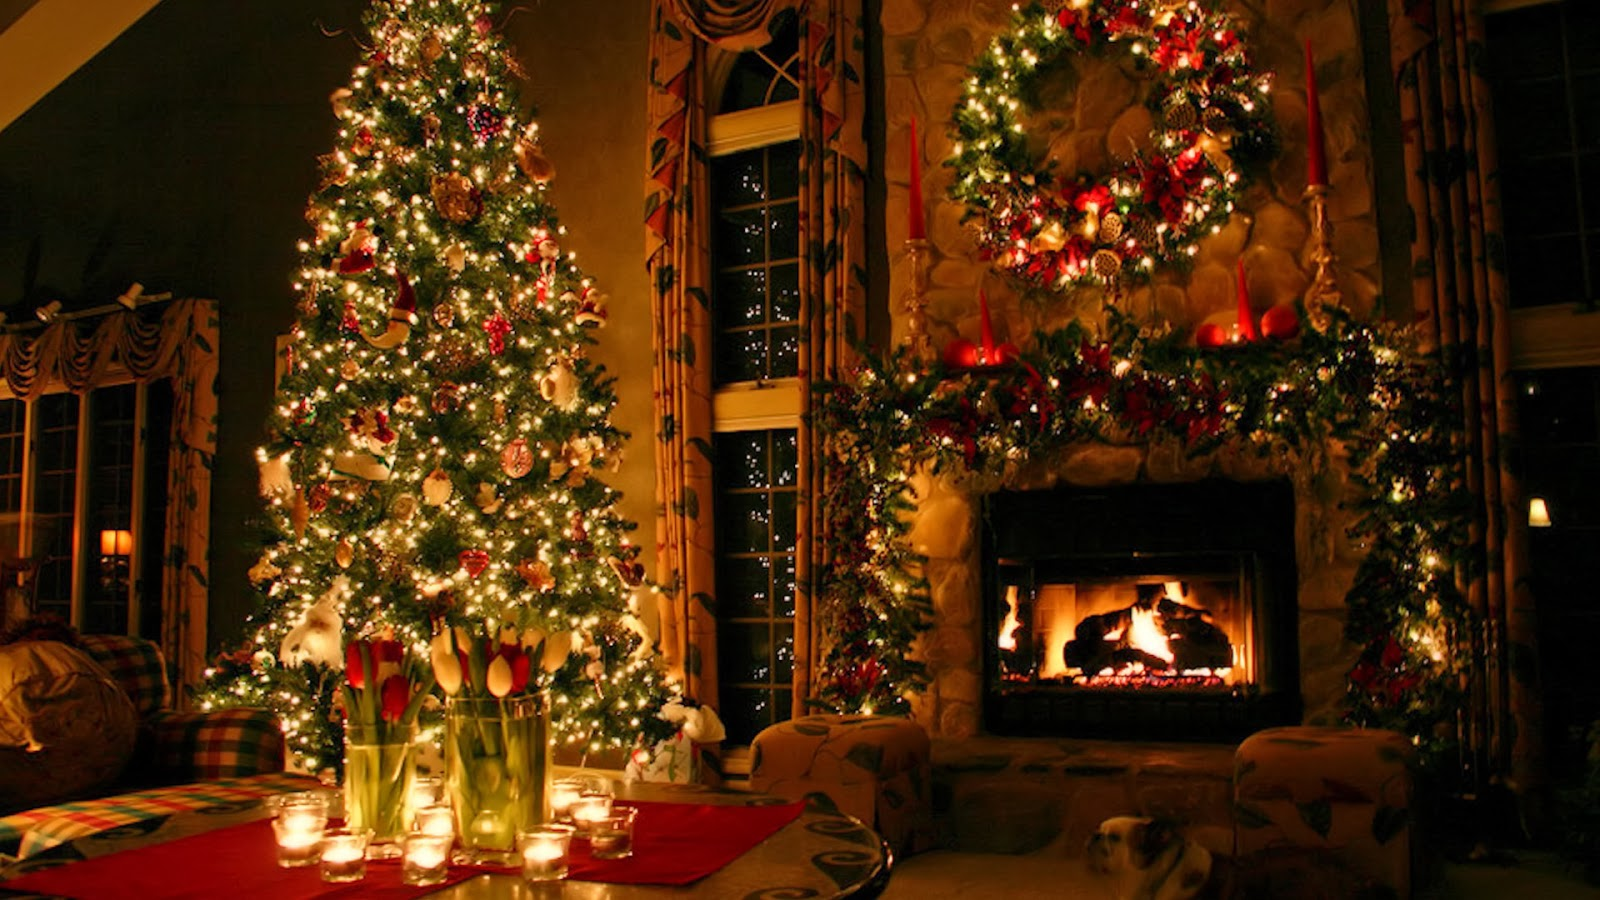 christmas decorations ideas world top blogger ForInside Christmas Decorations